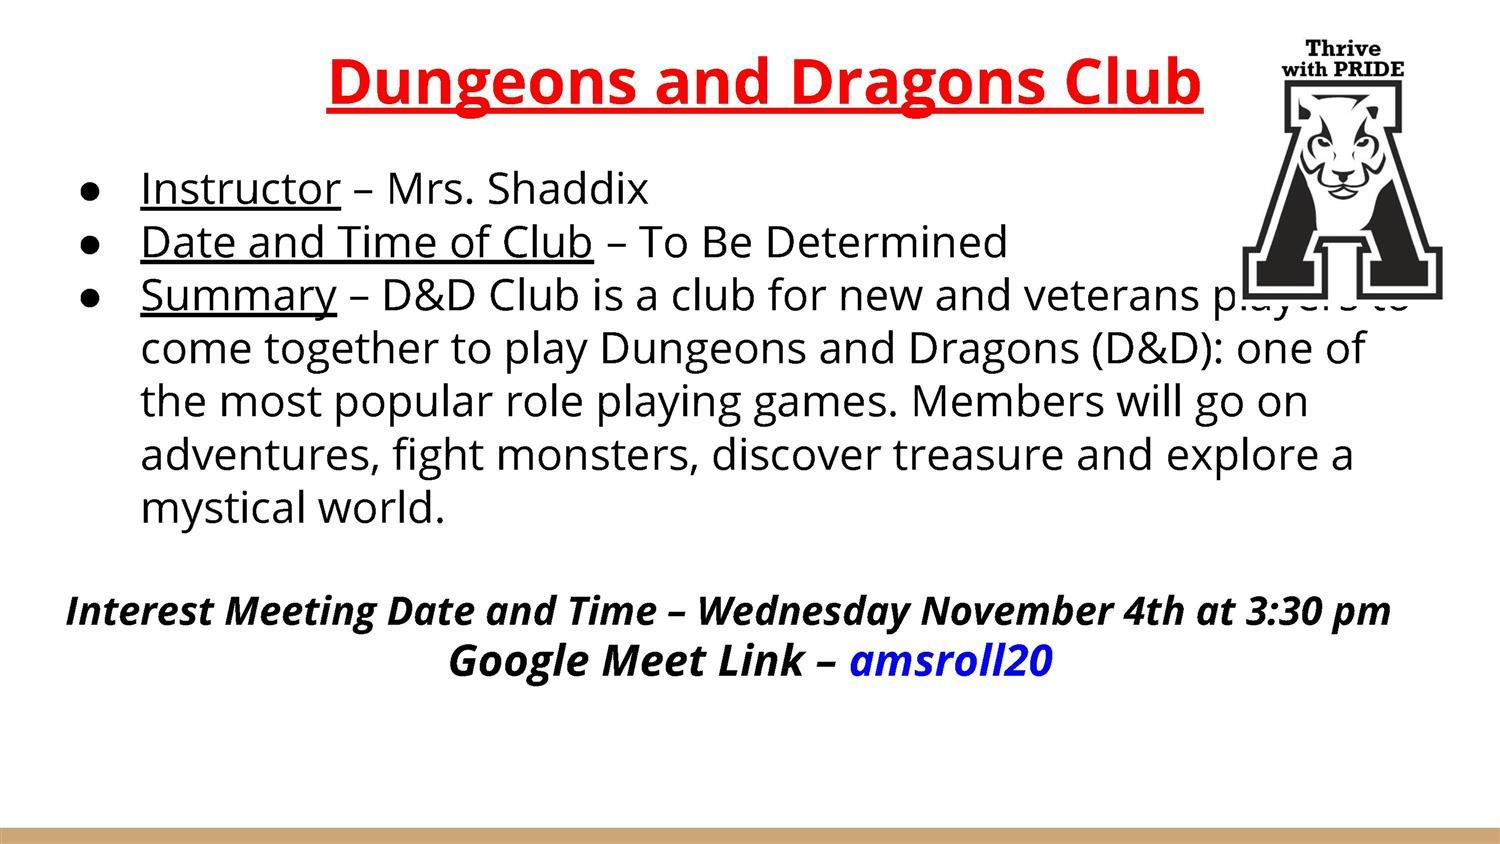 Dungeons and Dragons Club Information